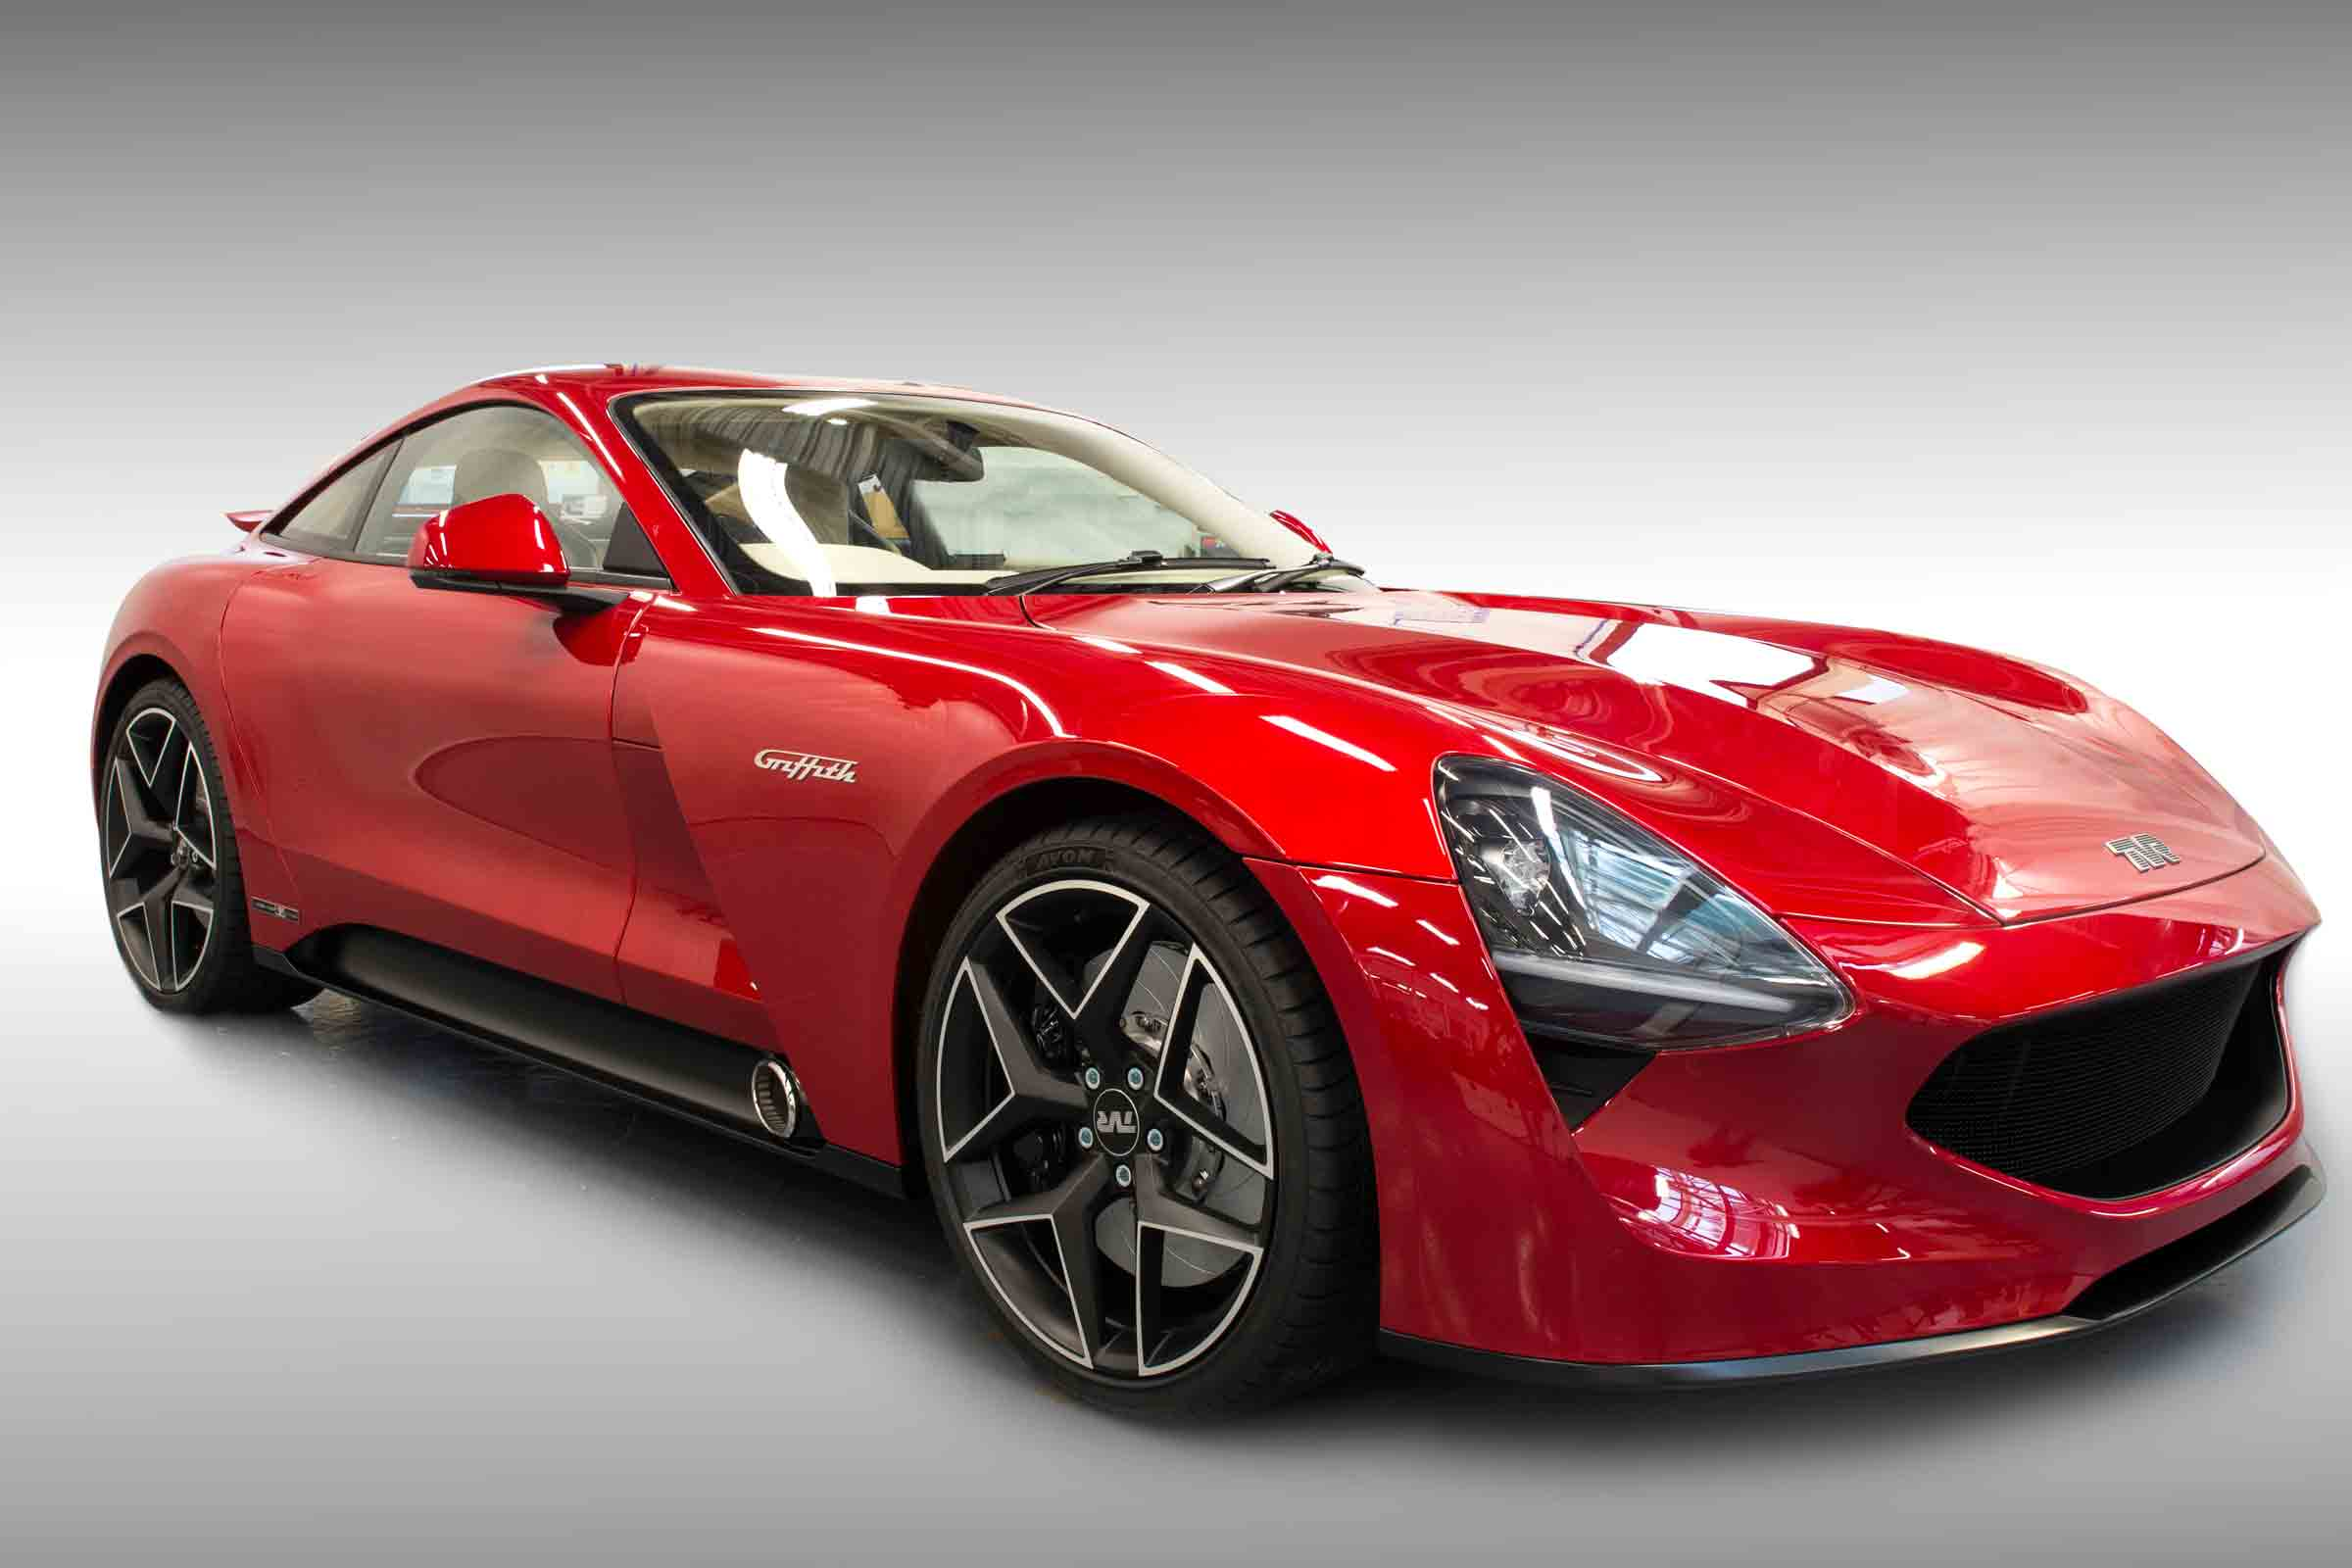 Tvr griffith photo - 2